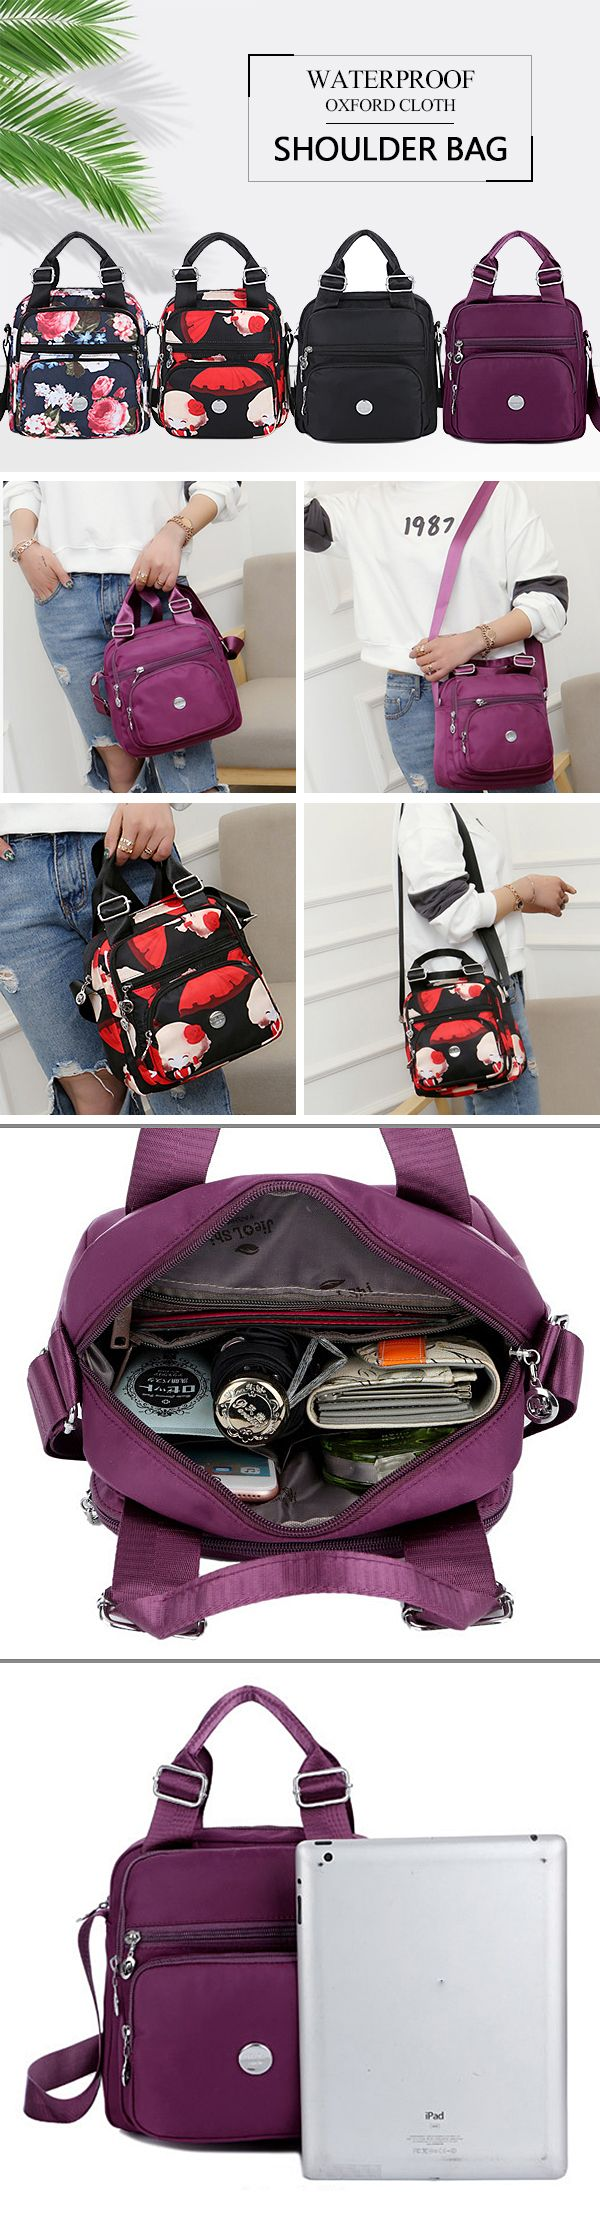 [$ 17.79]  Waterproof Oxford Cloth Women Handbag Crossbody Bag Shoulder Bag - We offer our customers the chance to purchase high quality products for low affordable prices! Such as bespoke clothing pieces, trinkets and customisable phone cases.  Check them out now!